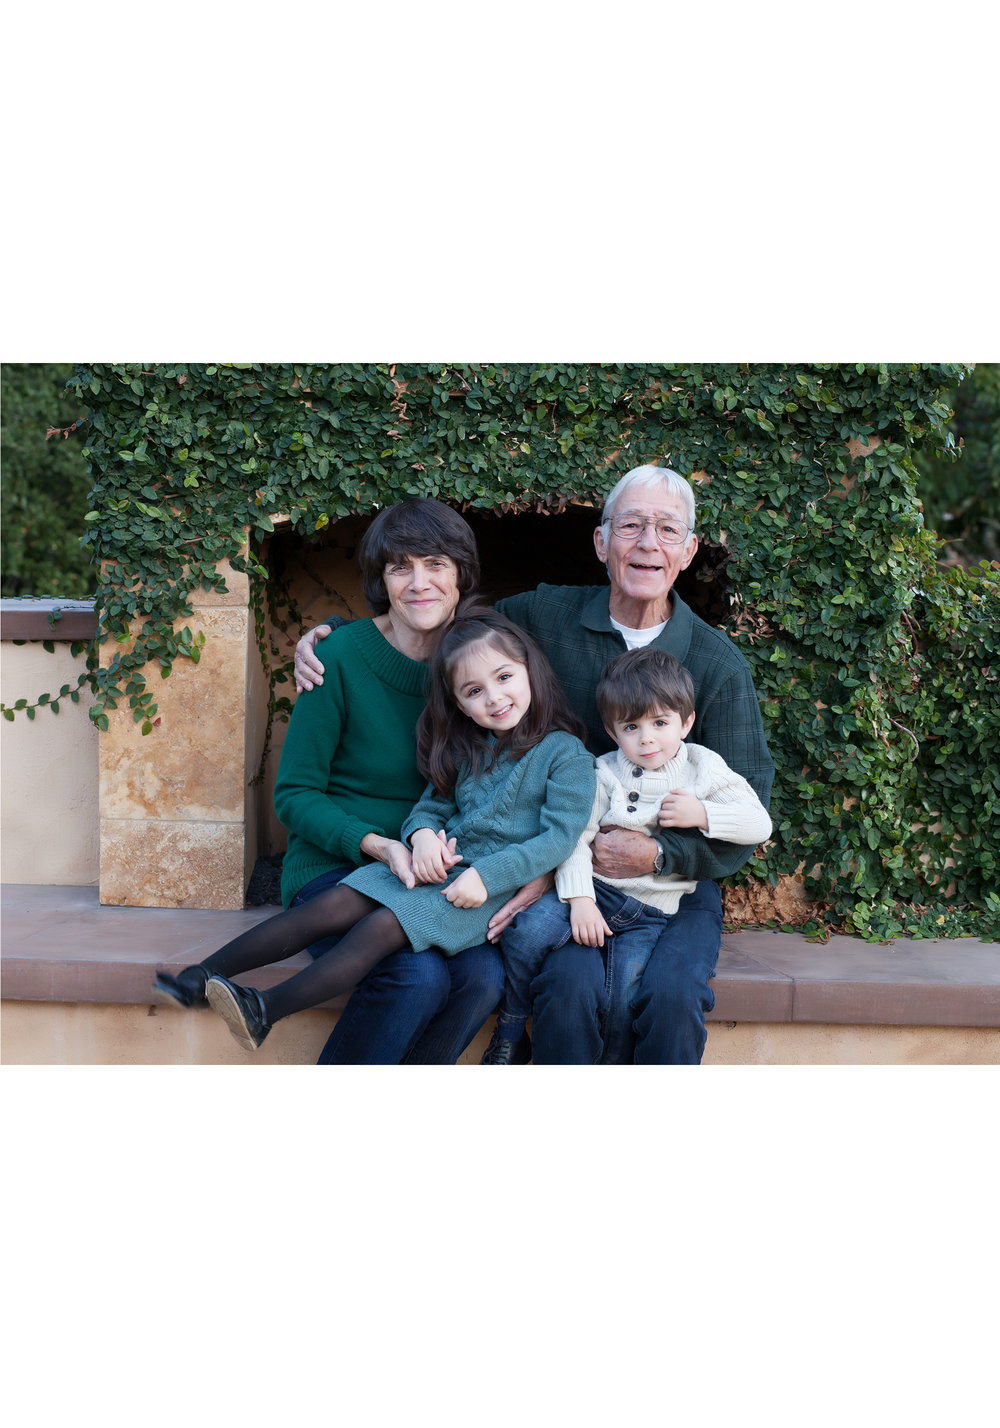 Copy of Copy of grandparents portrait with grandchildren in lafayette, ca